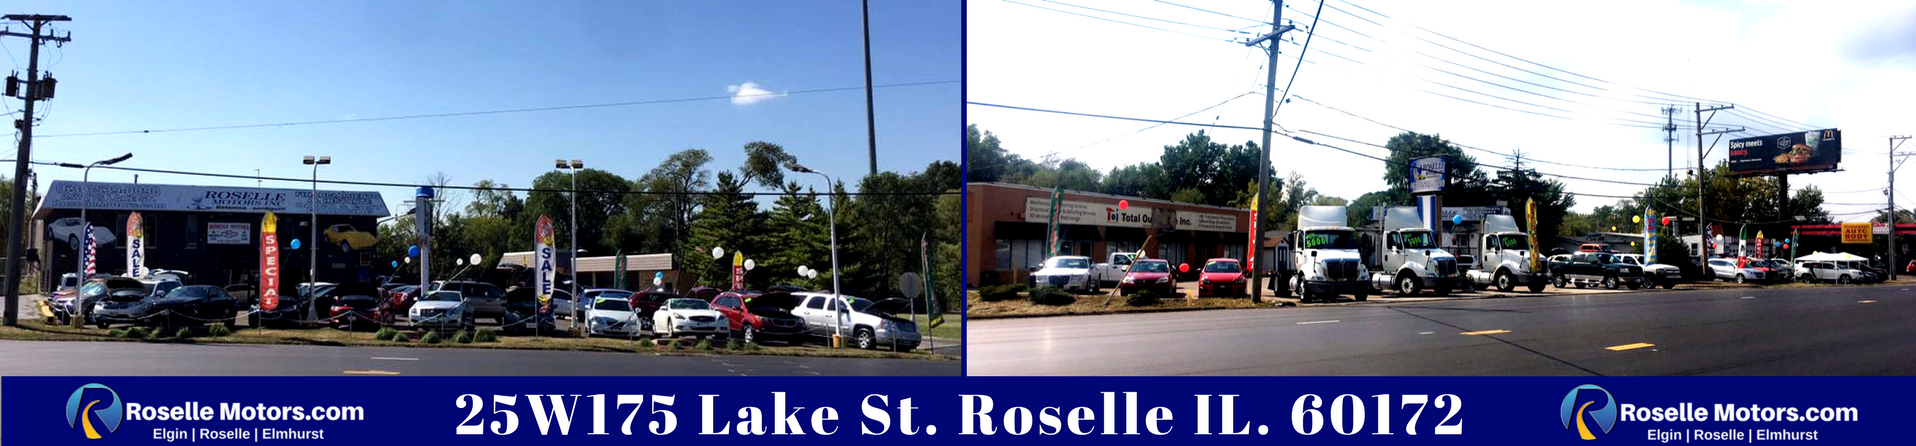 Roselle Motors Inc Roselle Elmhurst Elgin Il New